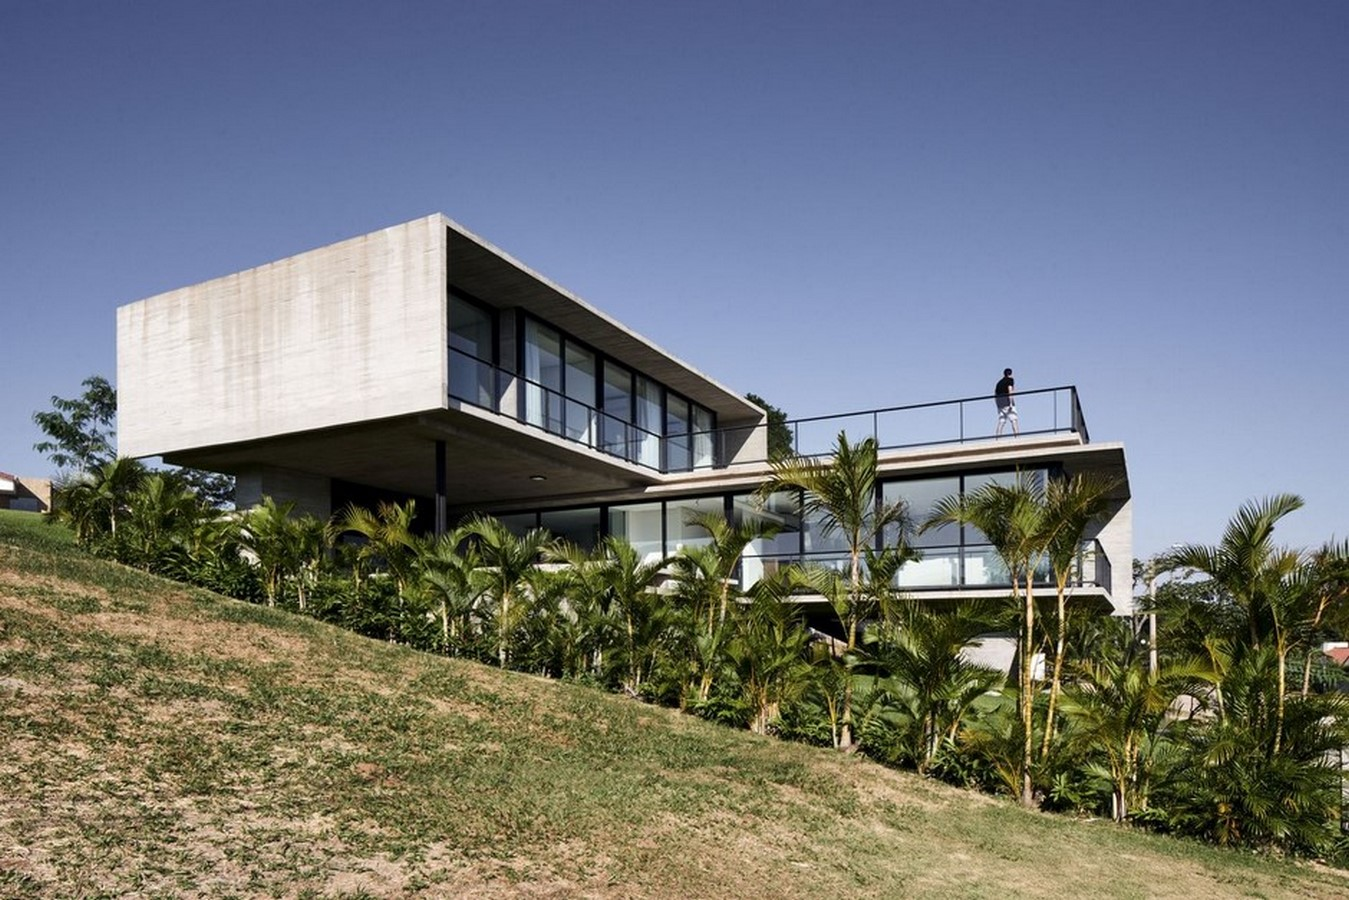 50 Examples of Modern concrete homes - Sheet12